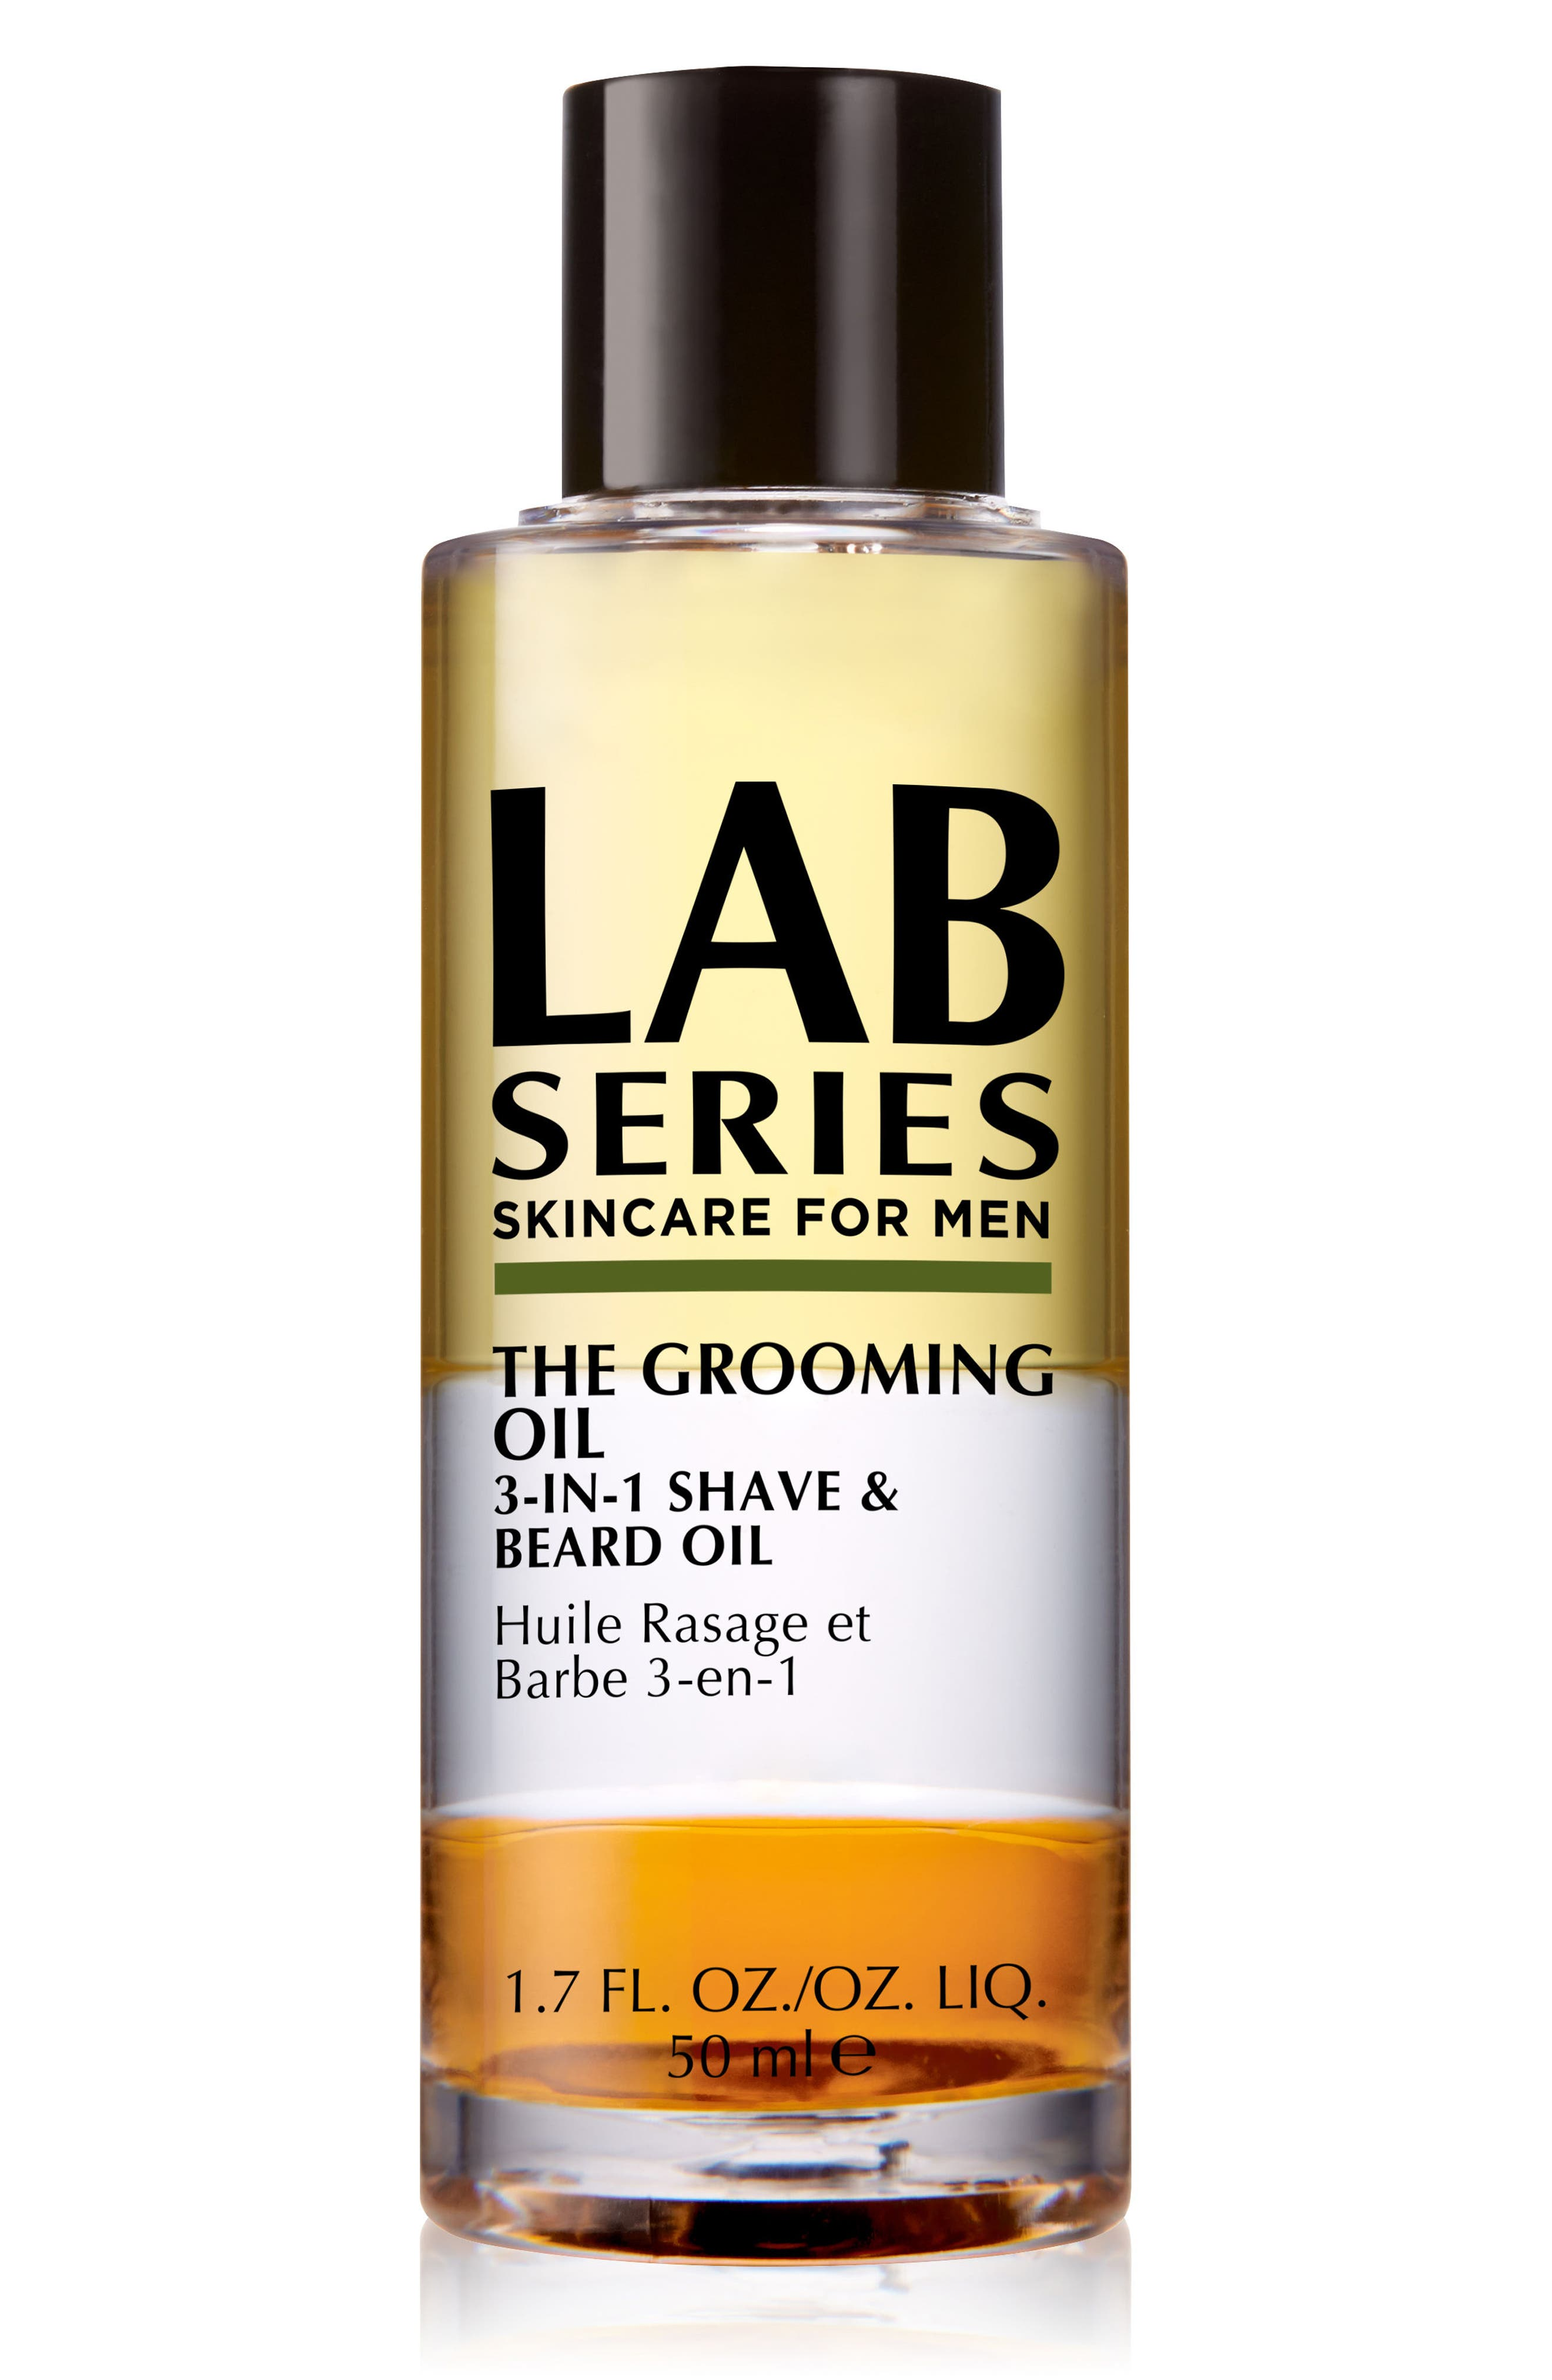 LAB SERIES SKINCARE FOR MEN,                             The Grooming 3-in-1 Shave & Beard Oil,                             Main thumbnail 1, color,                             NO COLOR